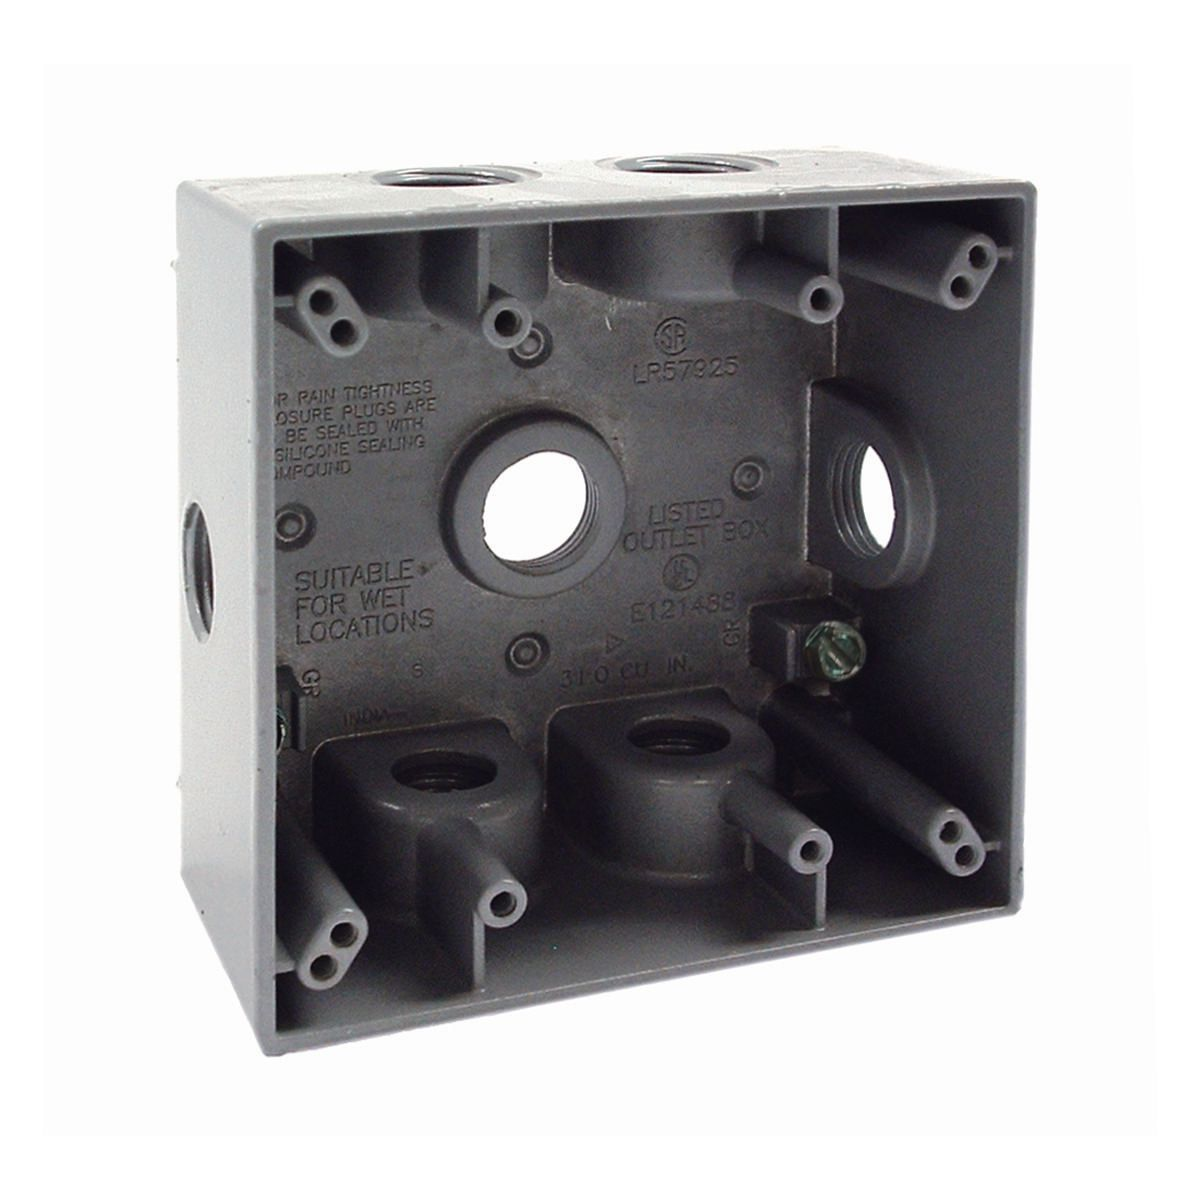 Hubbell-Raco 5338-0 BELL Weatherproof Outlet Box